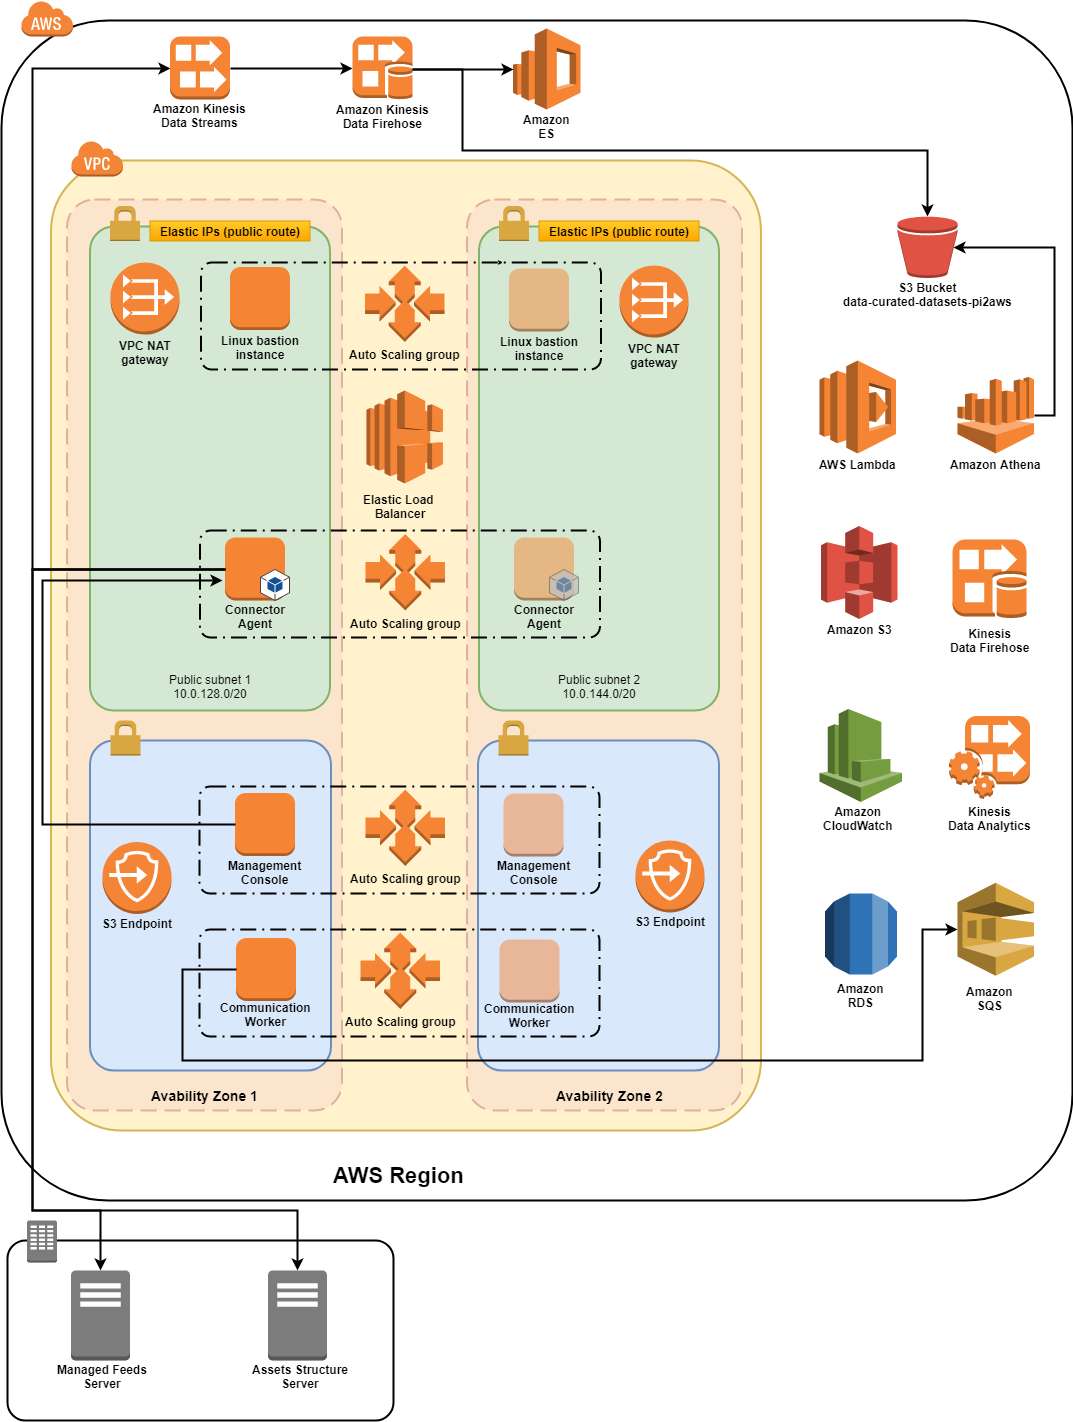 AWS Industrial Time Series Data Connector architecture